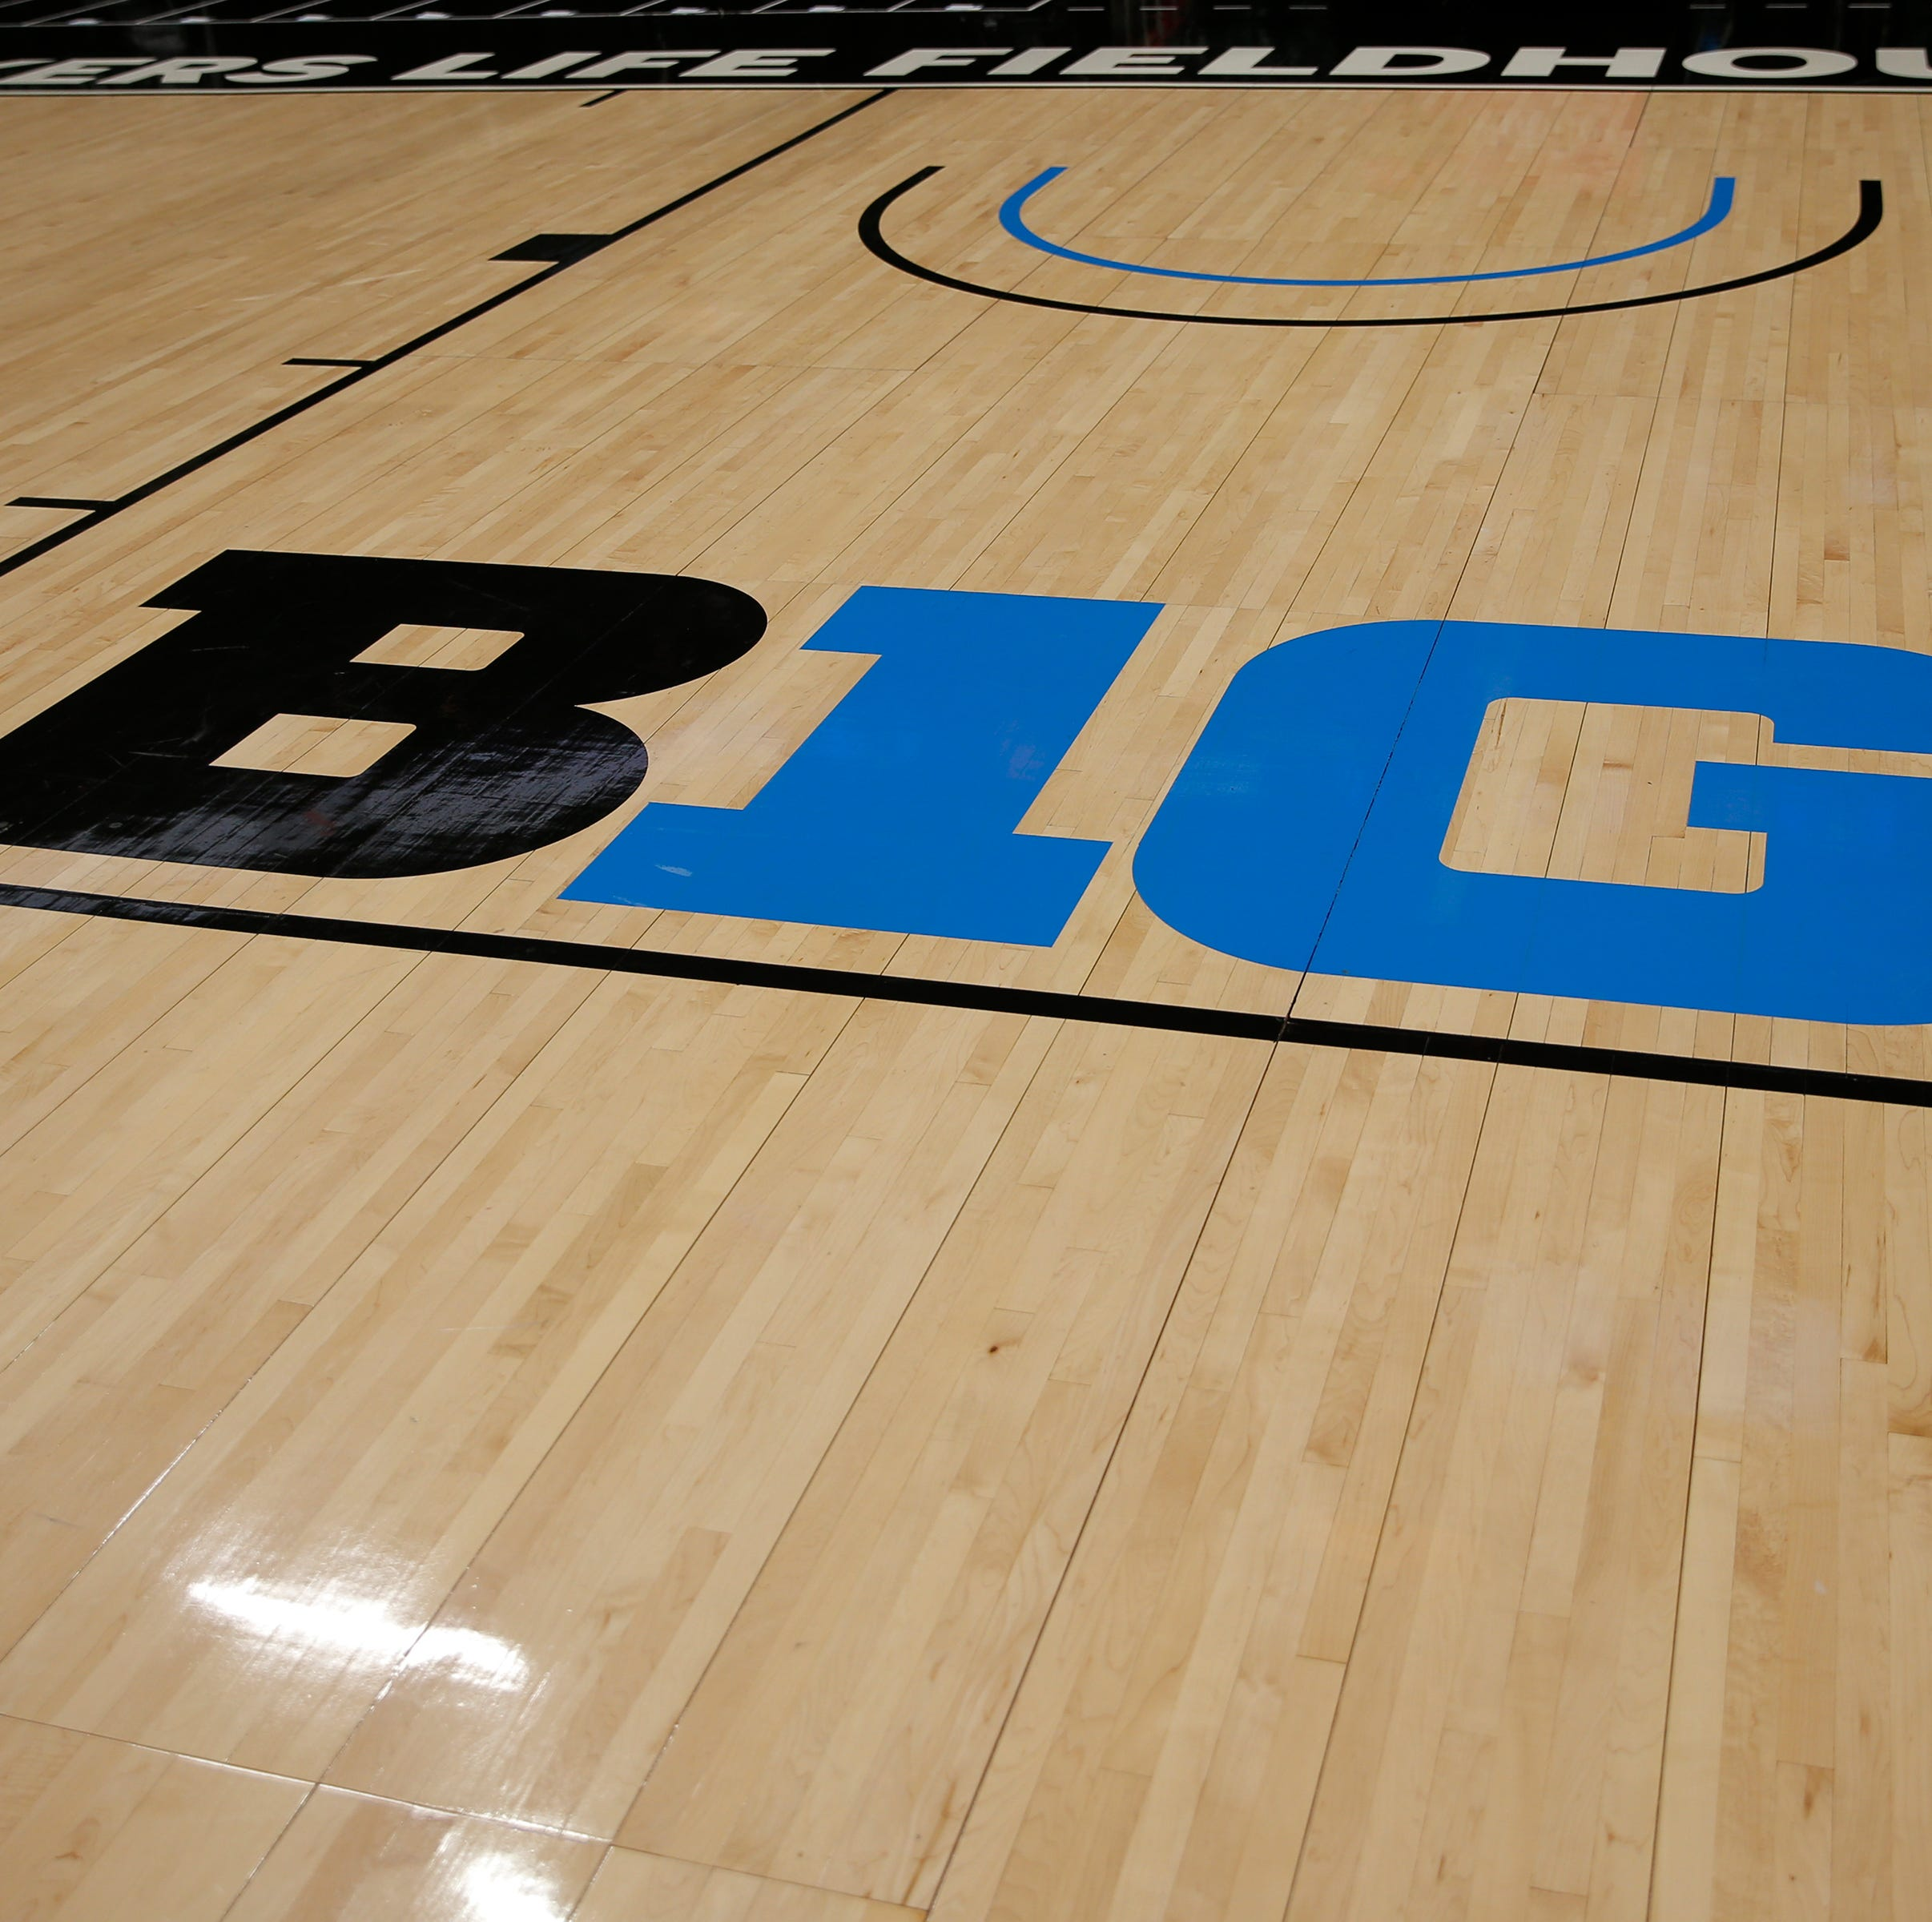 Big Ten tournament fans: 'We'd rather be in Indianapolis'